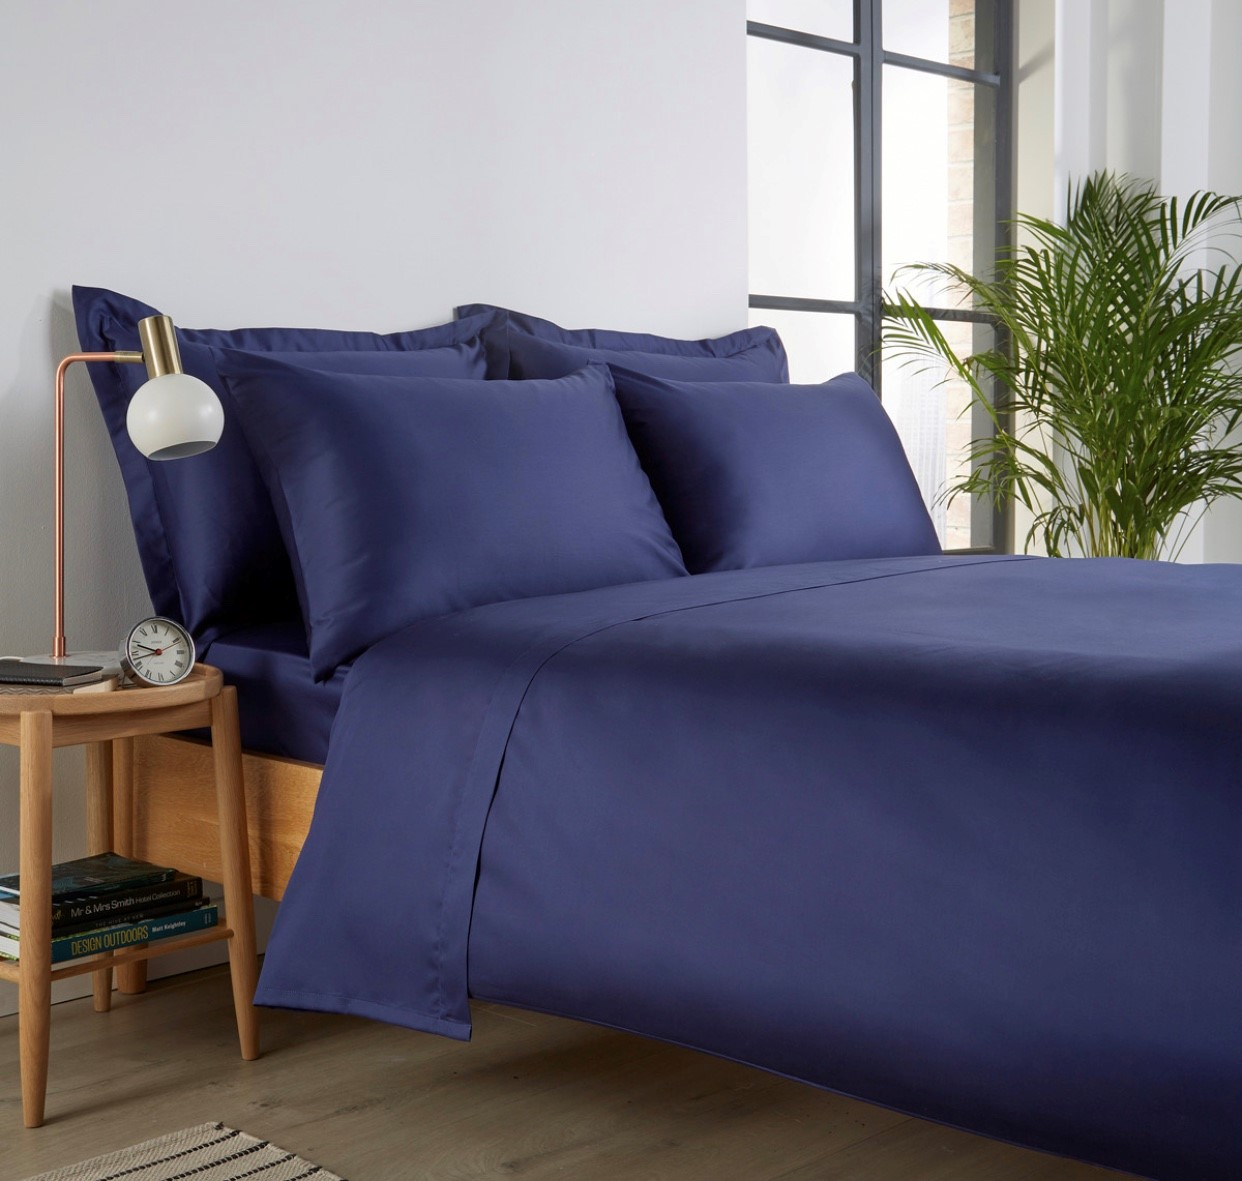 Christy '400 Thread Count Cotton Sateen' Fitted Sheet Navy (Extra Deep)